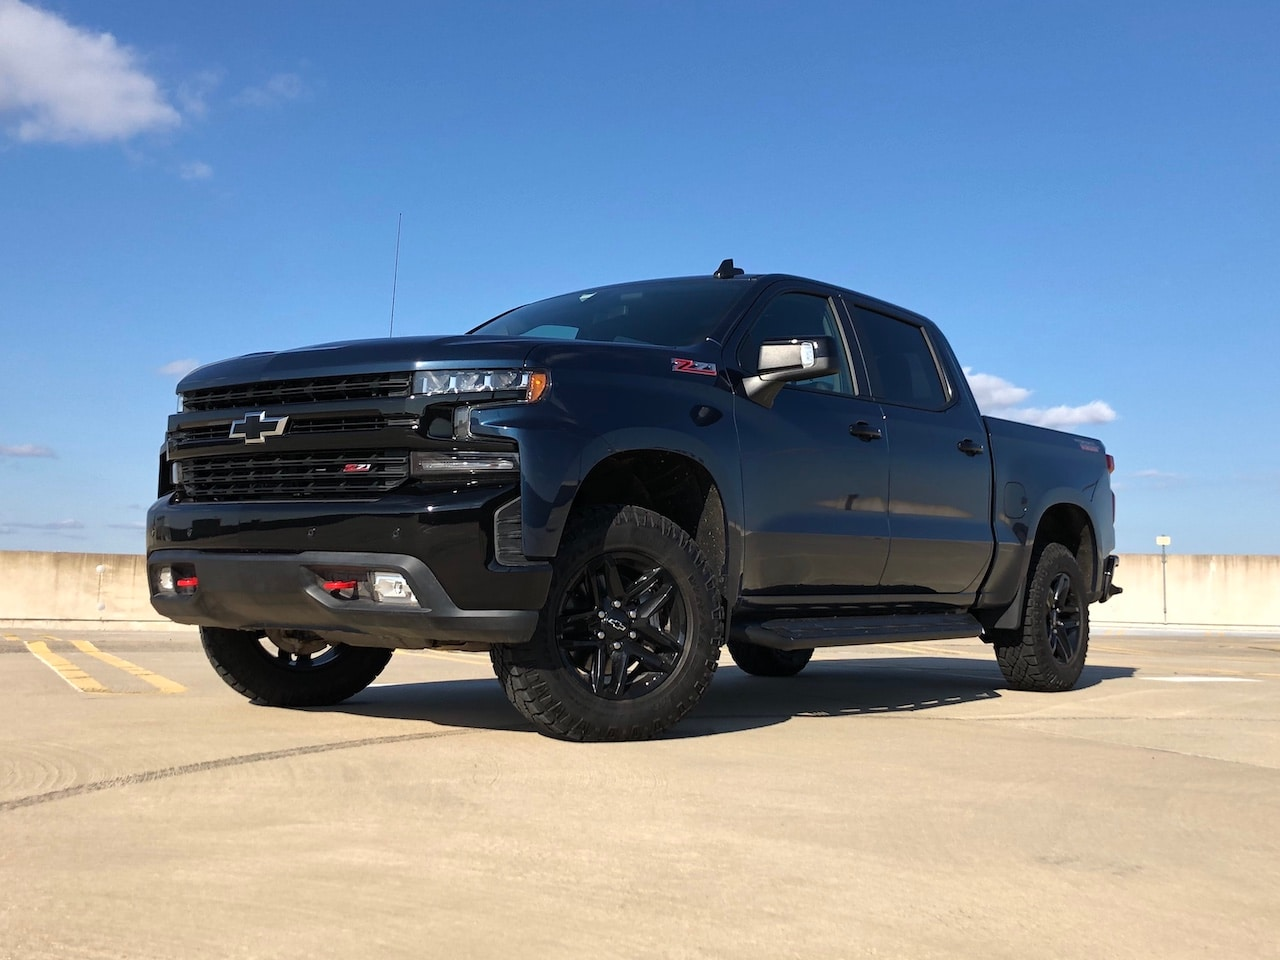 Image of a 2019 Chevrolet Silverado Trail Boss vehicle